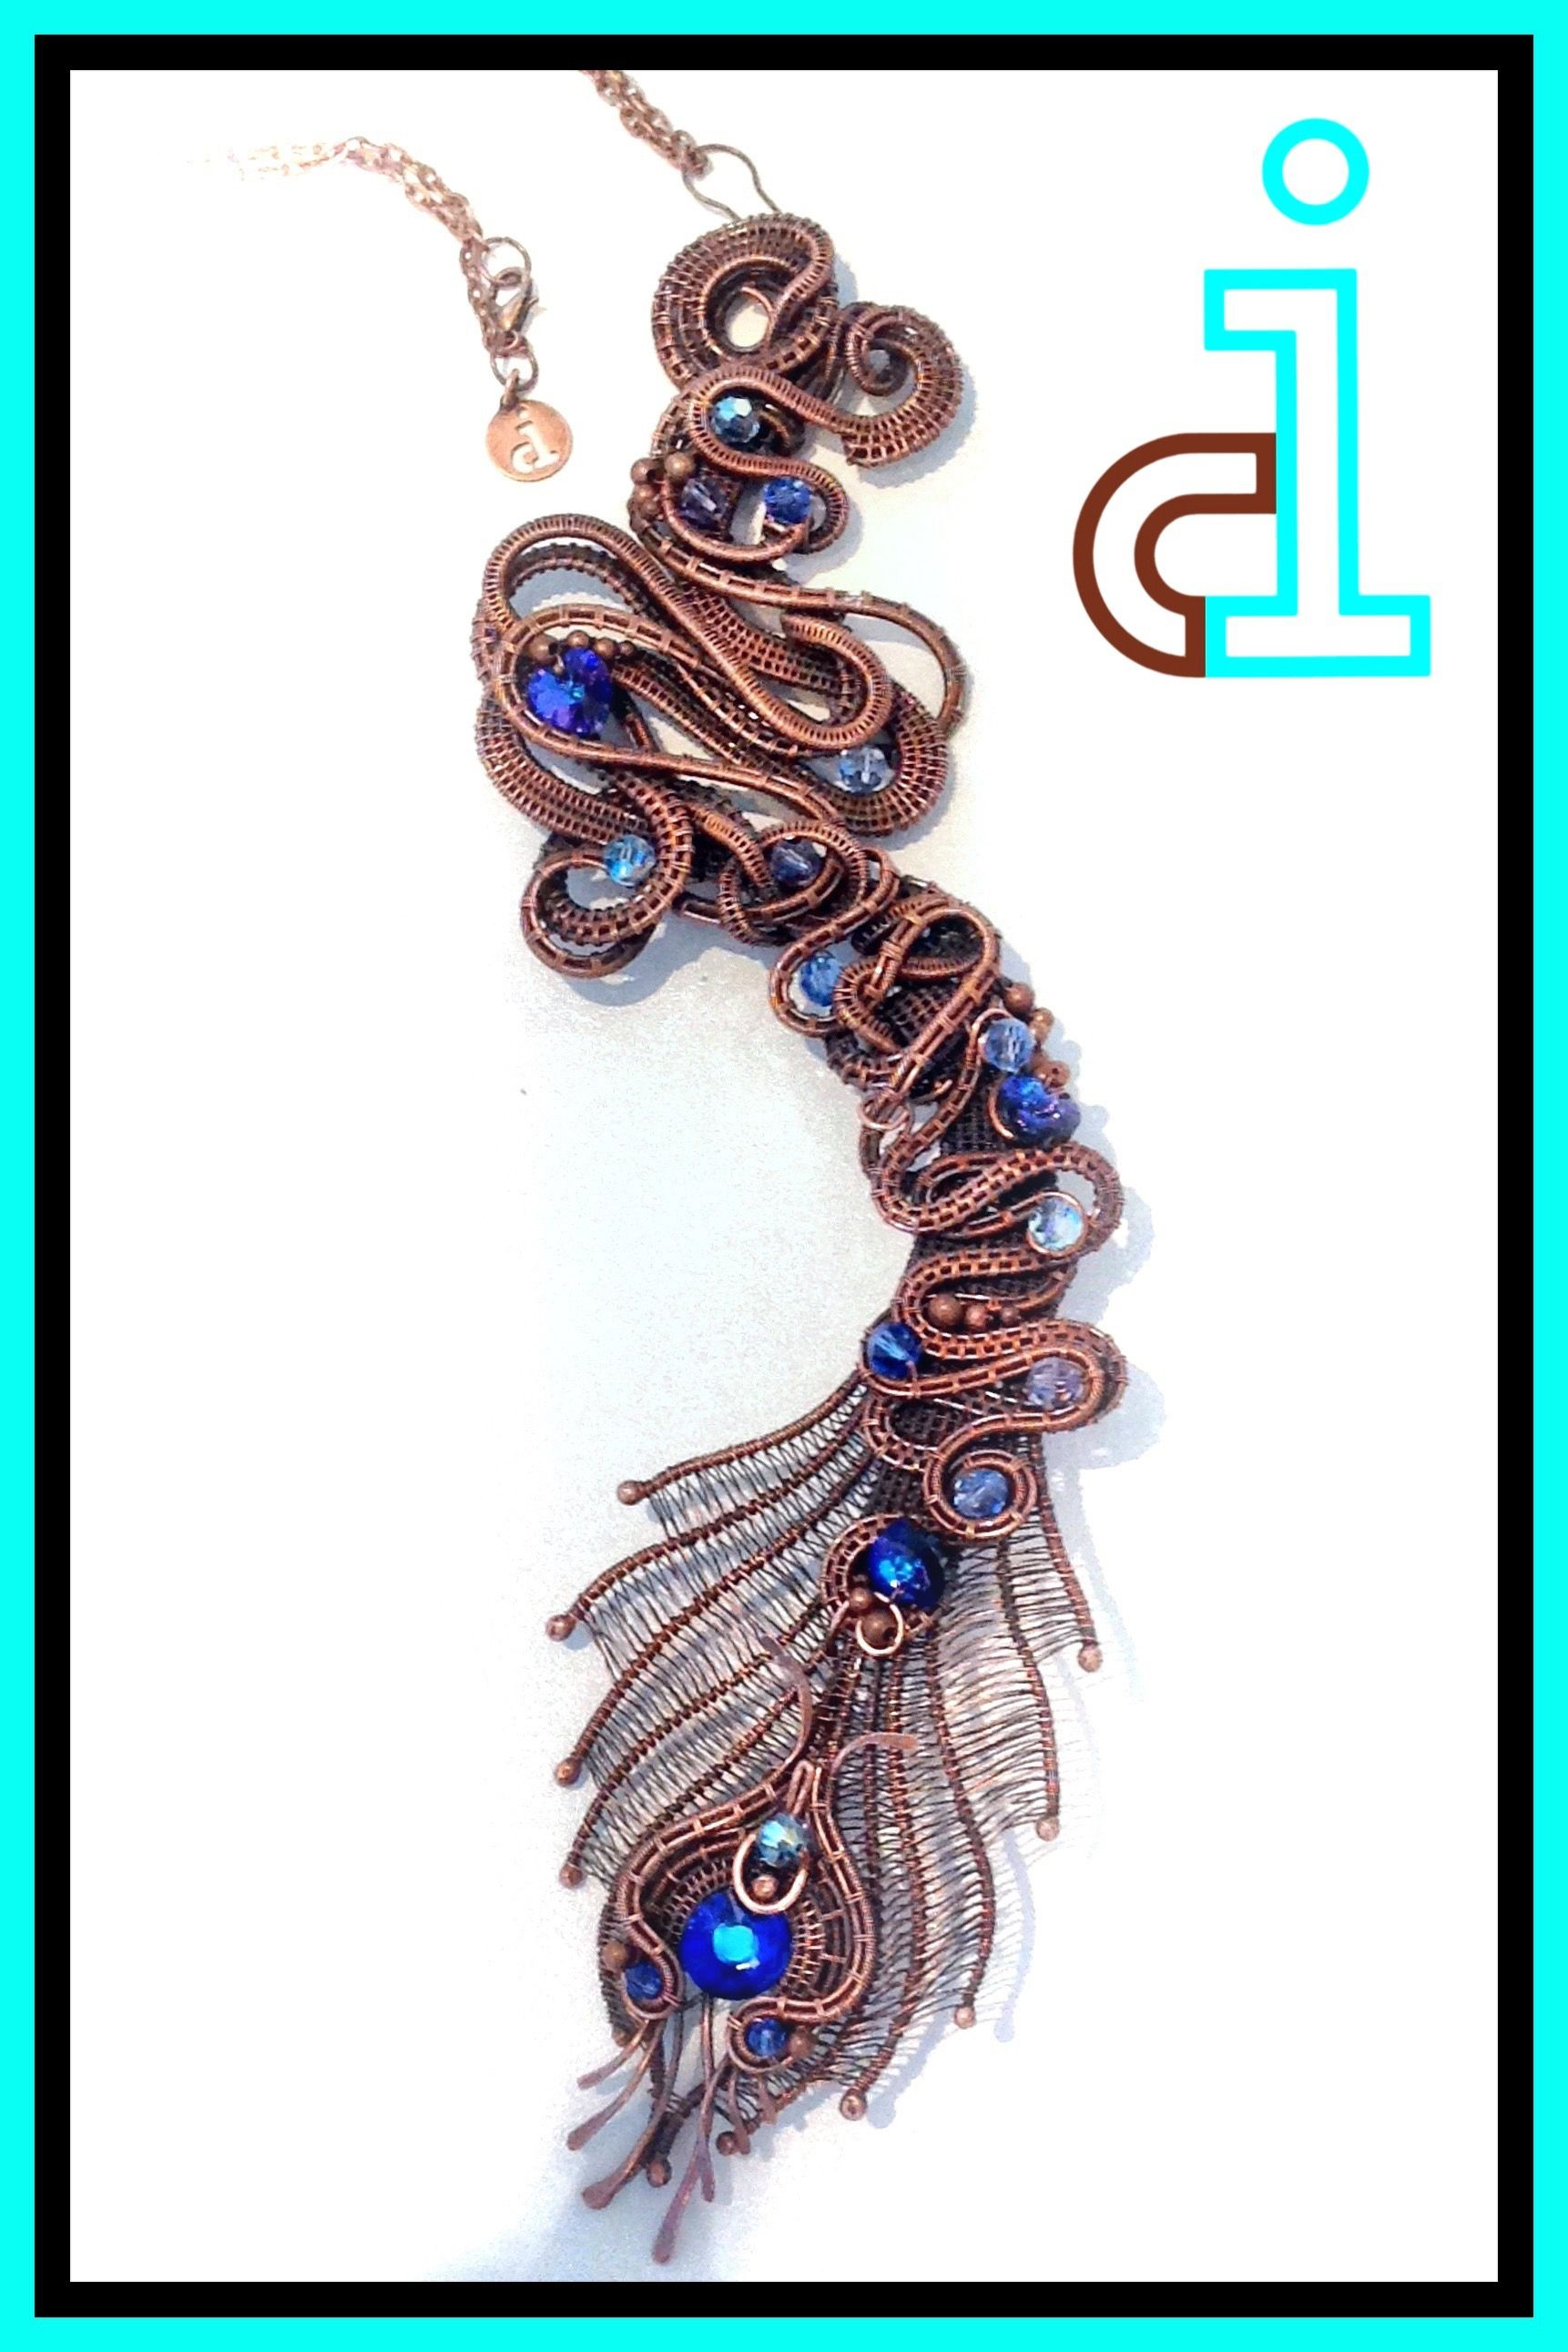 Pin by Vera on Ювелирка своими руками | Pinterest | Wire wrapping ...